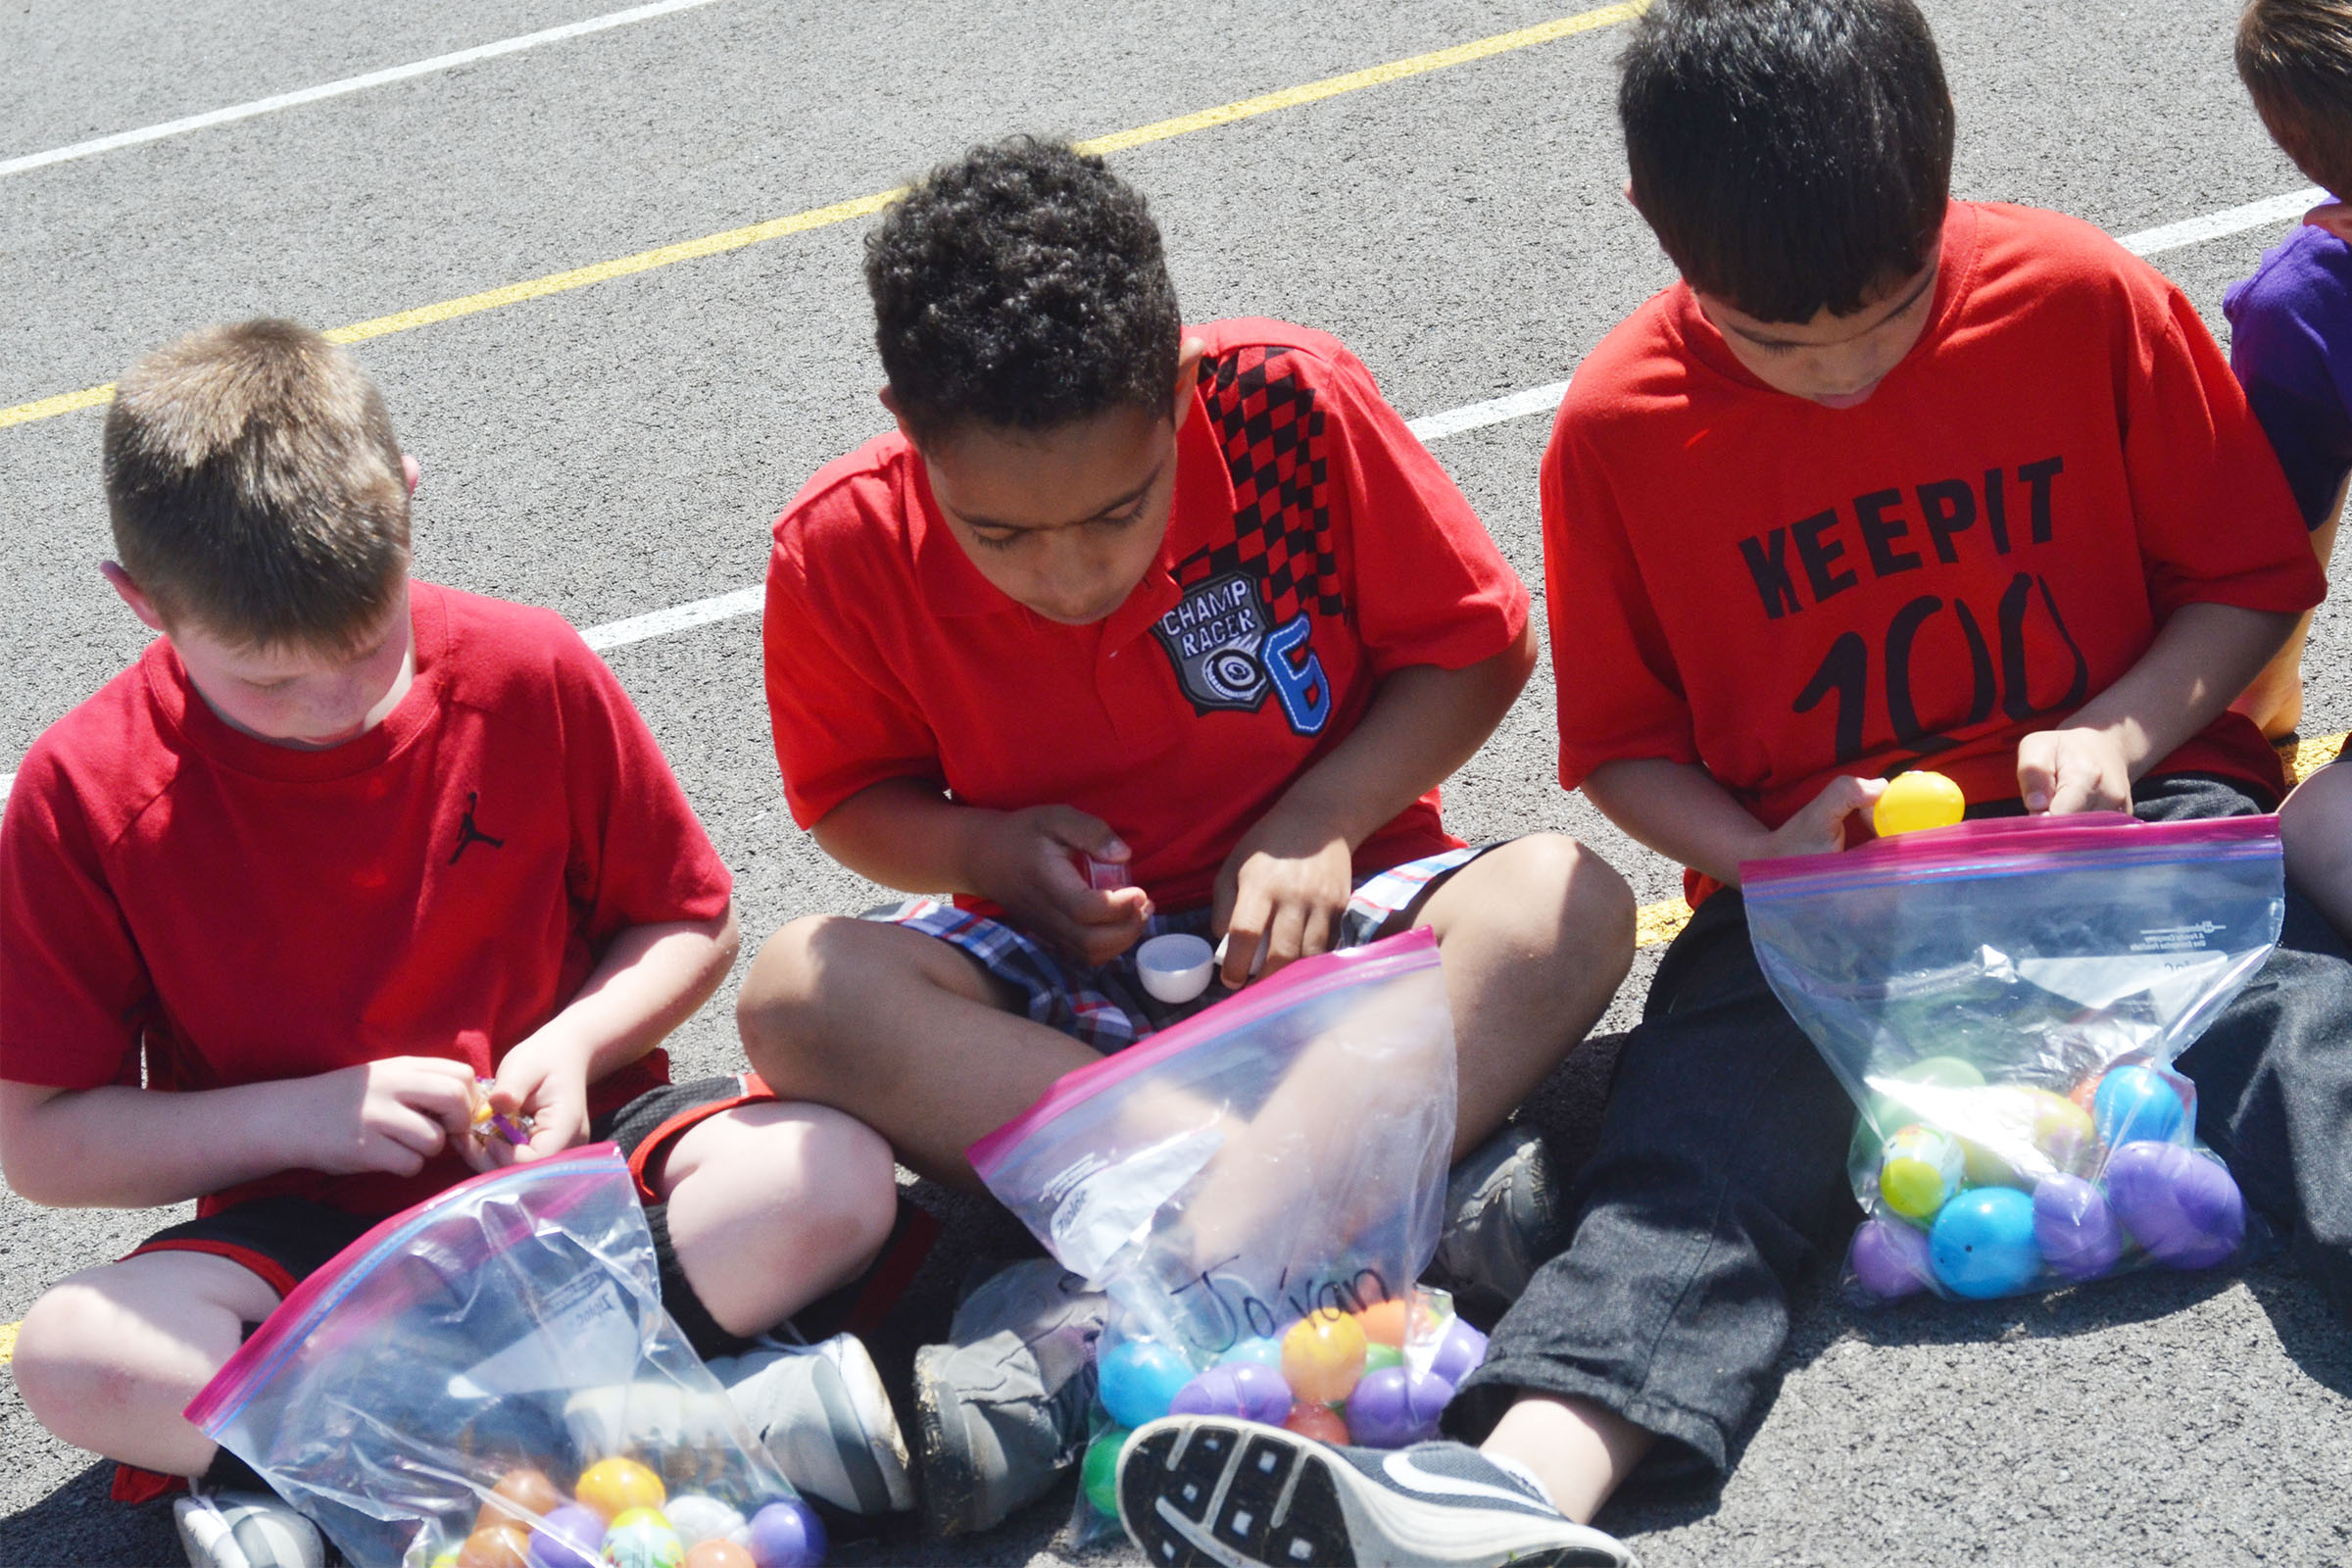 From left, CES first-graders Brody Sidebottom, Jo'van Goins and Xadrian Fugate look inside their Easter eggs.